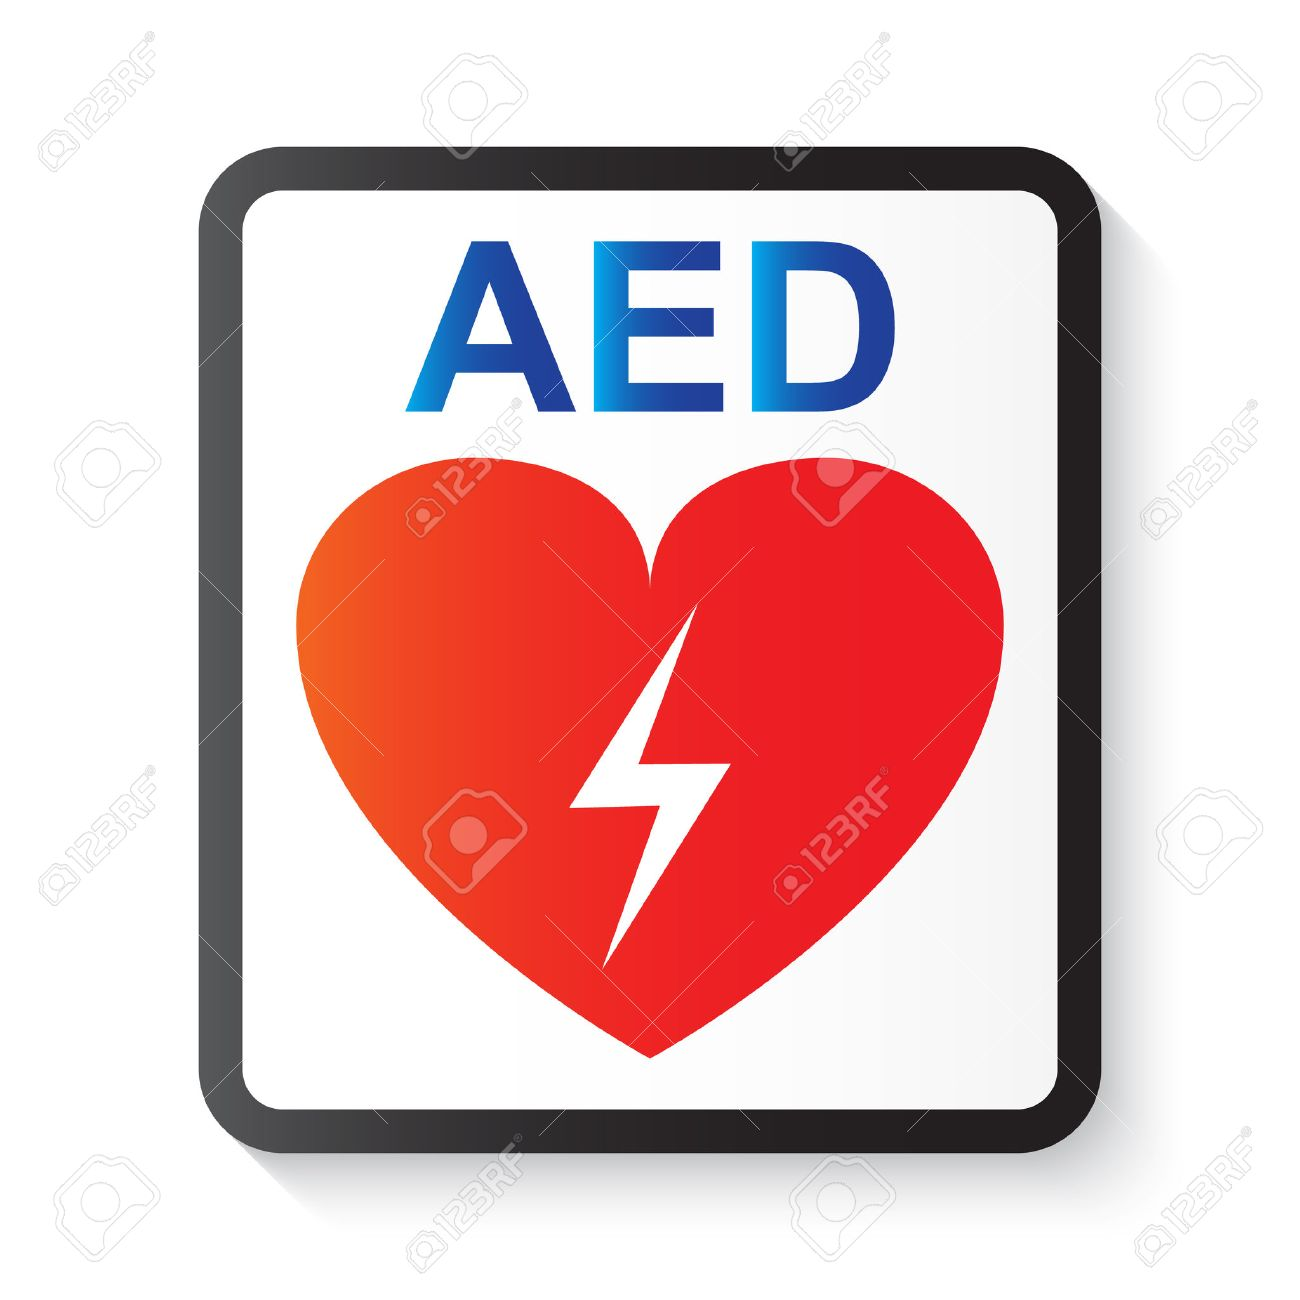 AED ( Automated External Defibrillator ) , heart and thunderbolt ( image for basic life support and advanced cardiac life support ) - 56750272